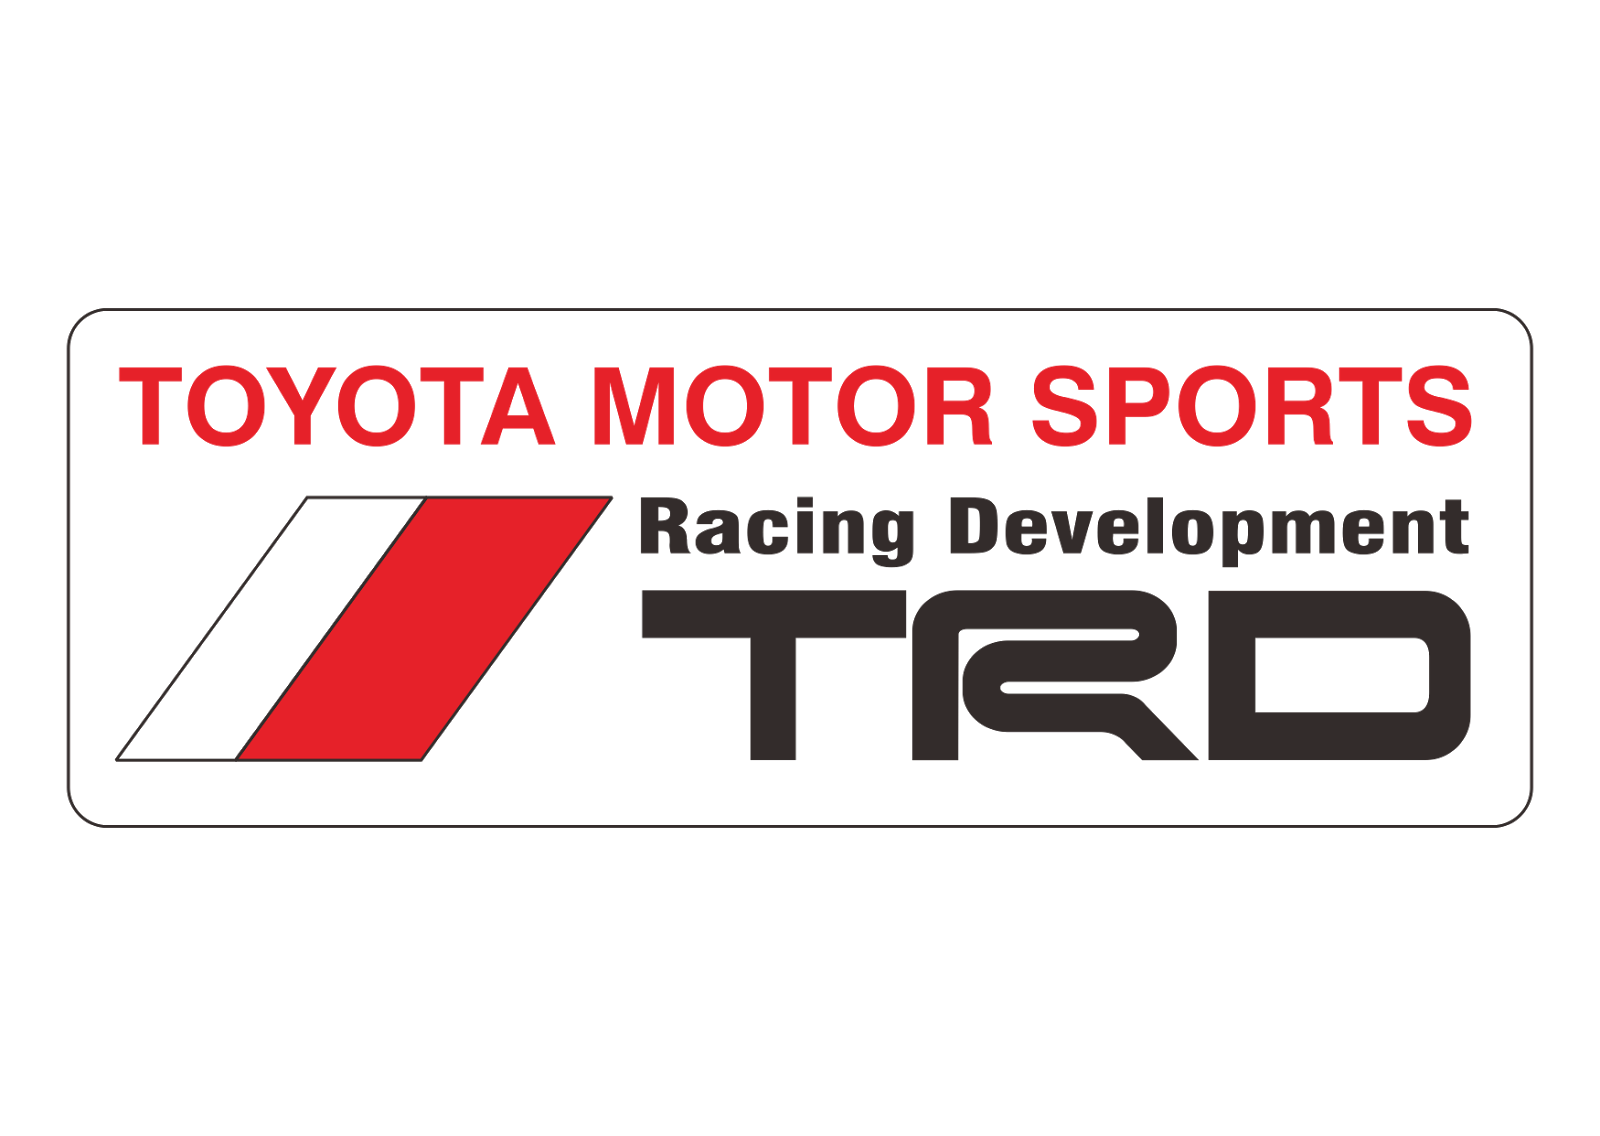 download TRD Logo Vector